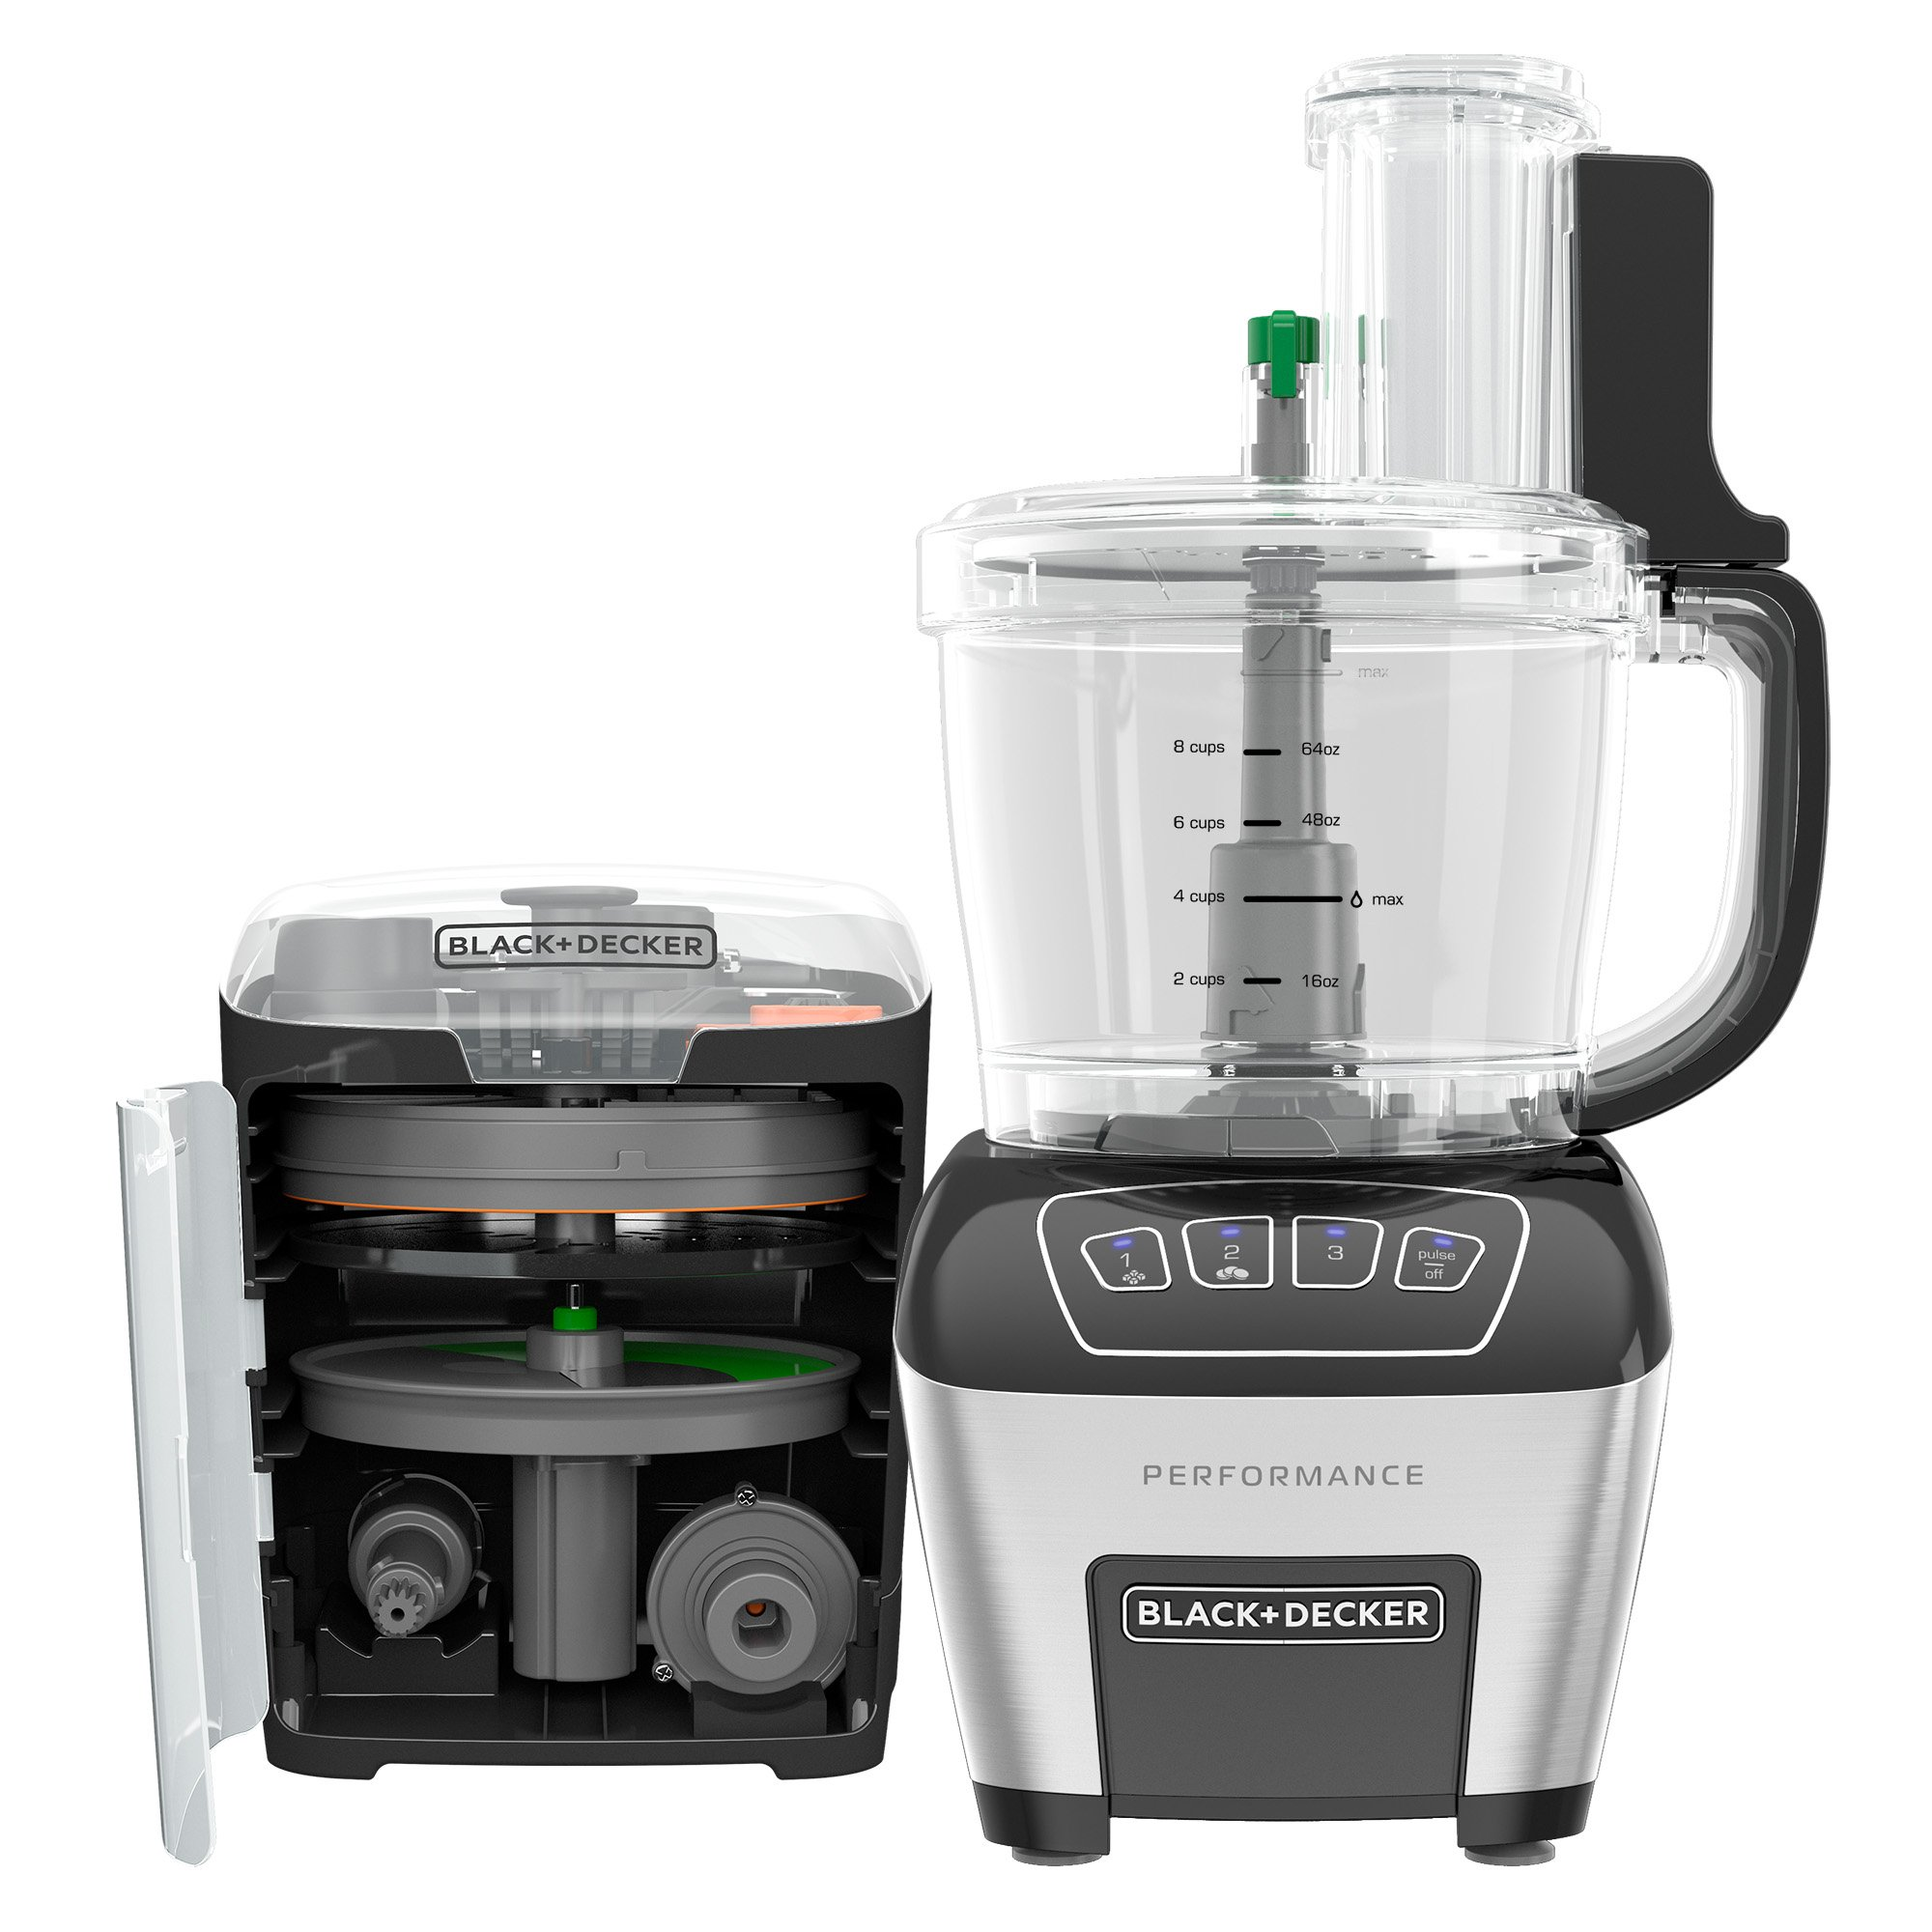 BLACK+DECKER FP6010 Performance Dicing Food Processor Digital Control, Food Processor, Stainless Steel